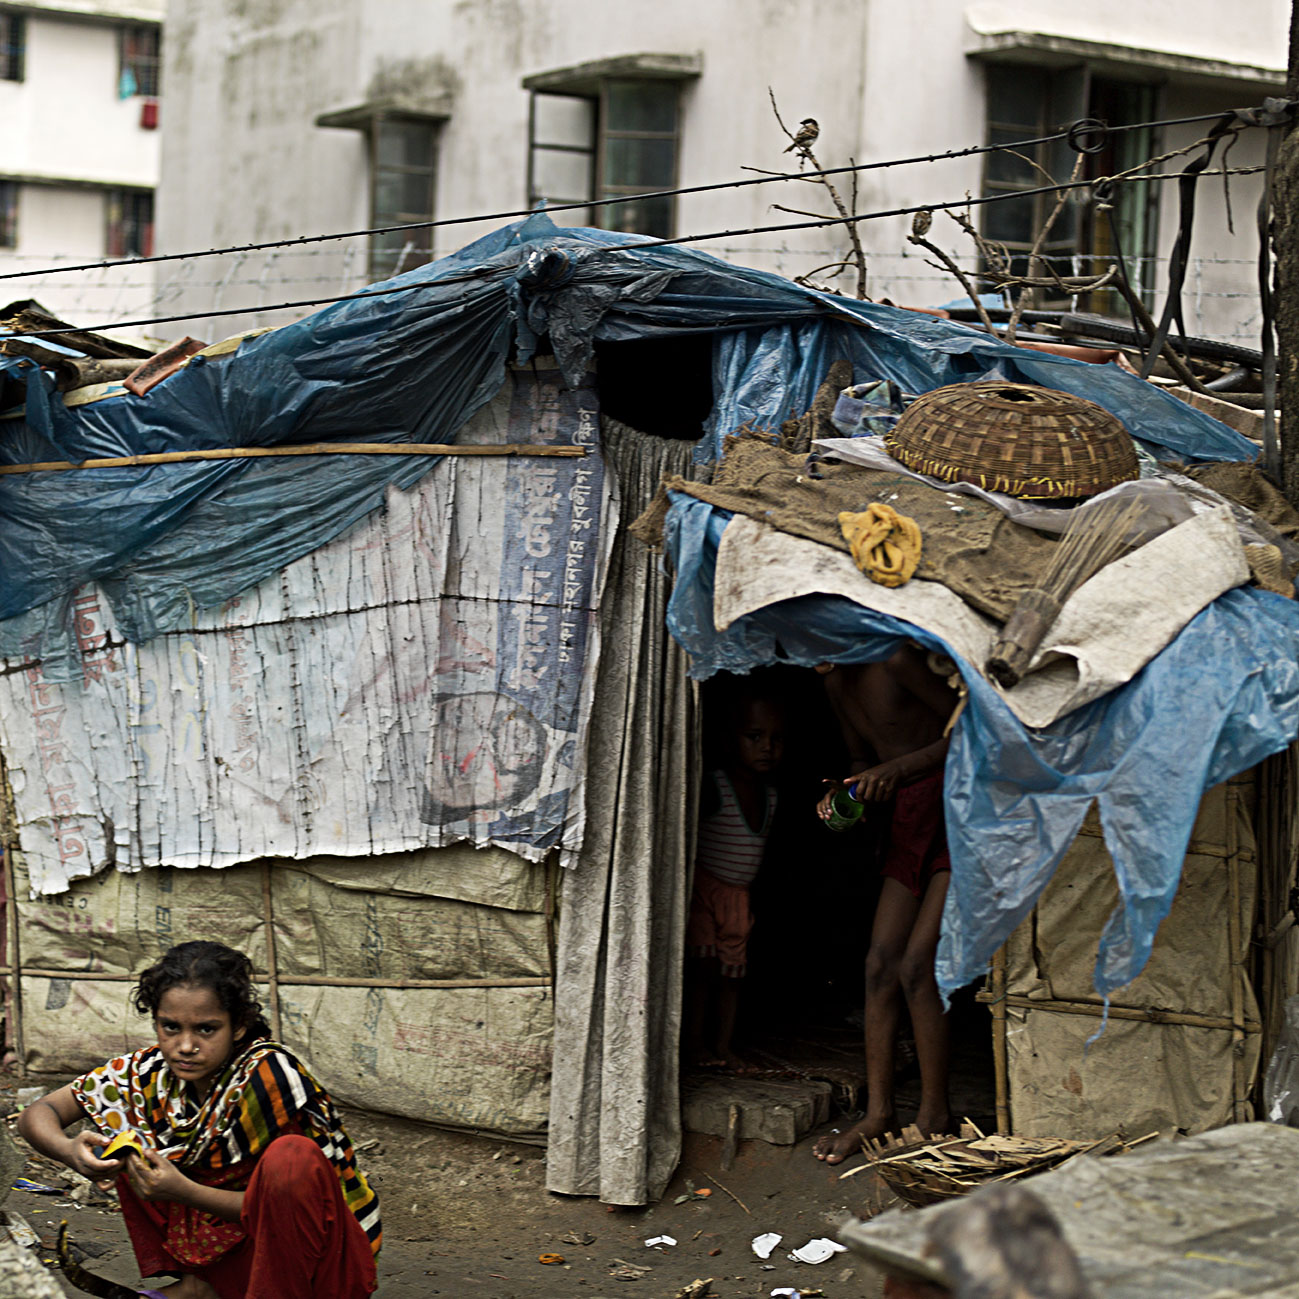 50. Homeless Bangladesh